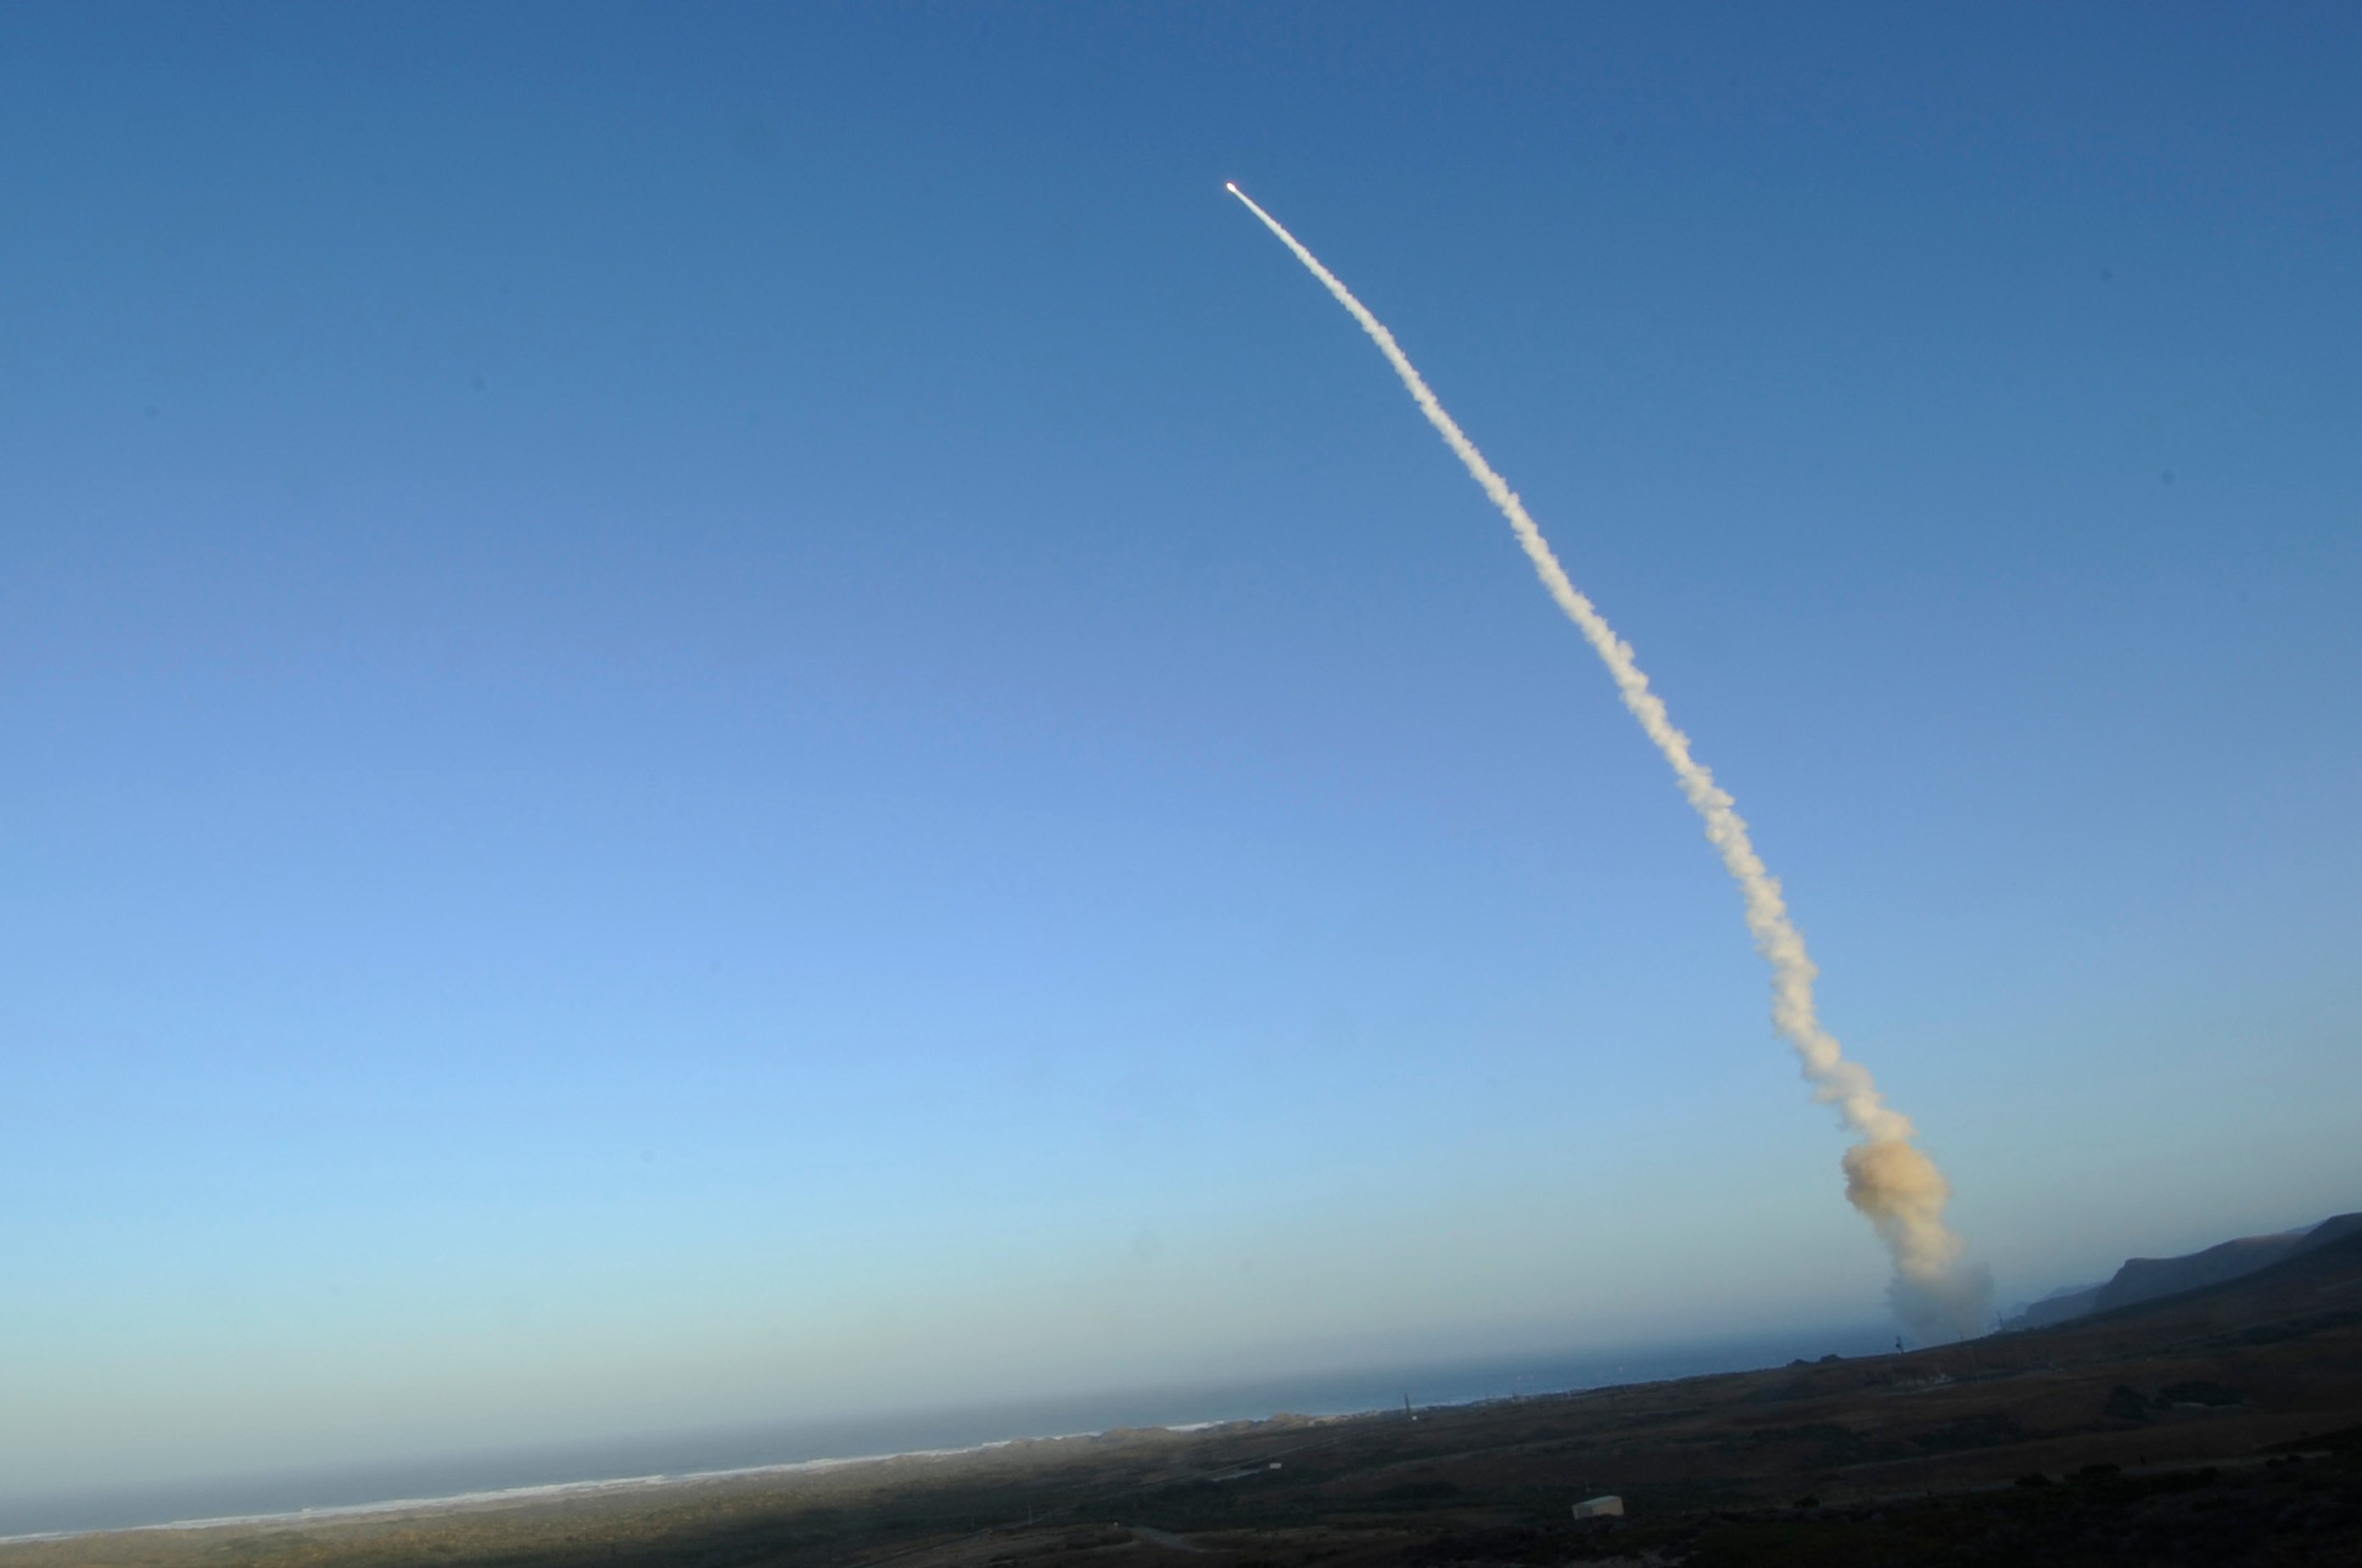 An unarmed Minuteman III intercontinental ballistic missile was launched during an operational test in 2013. US Air Force Photo